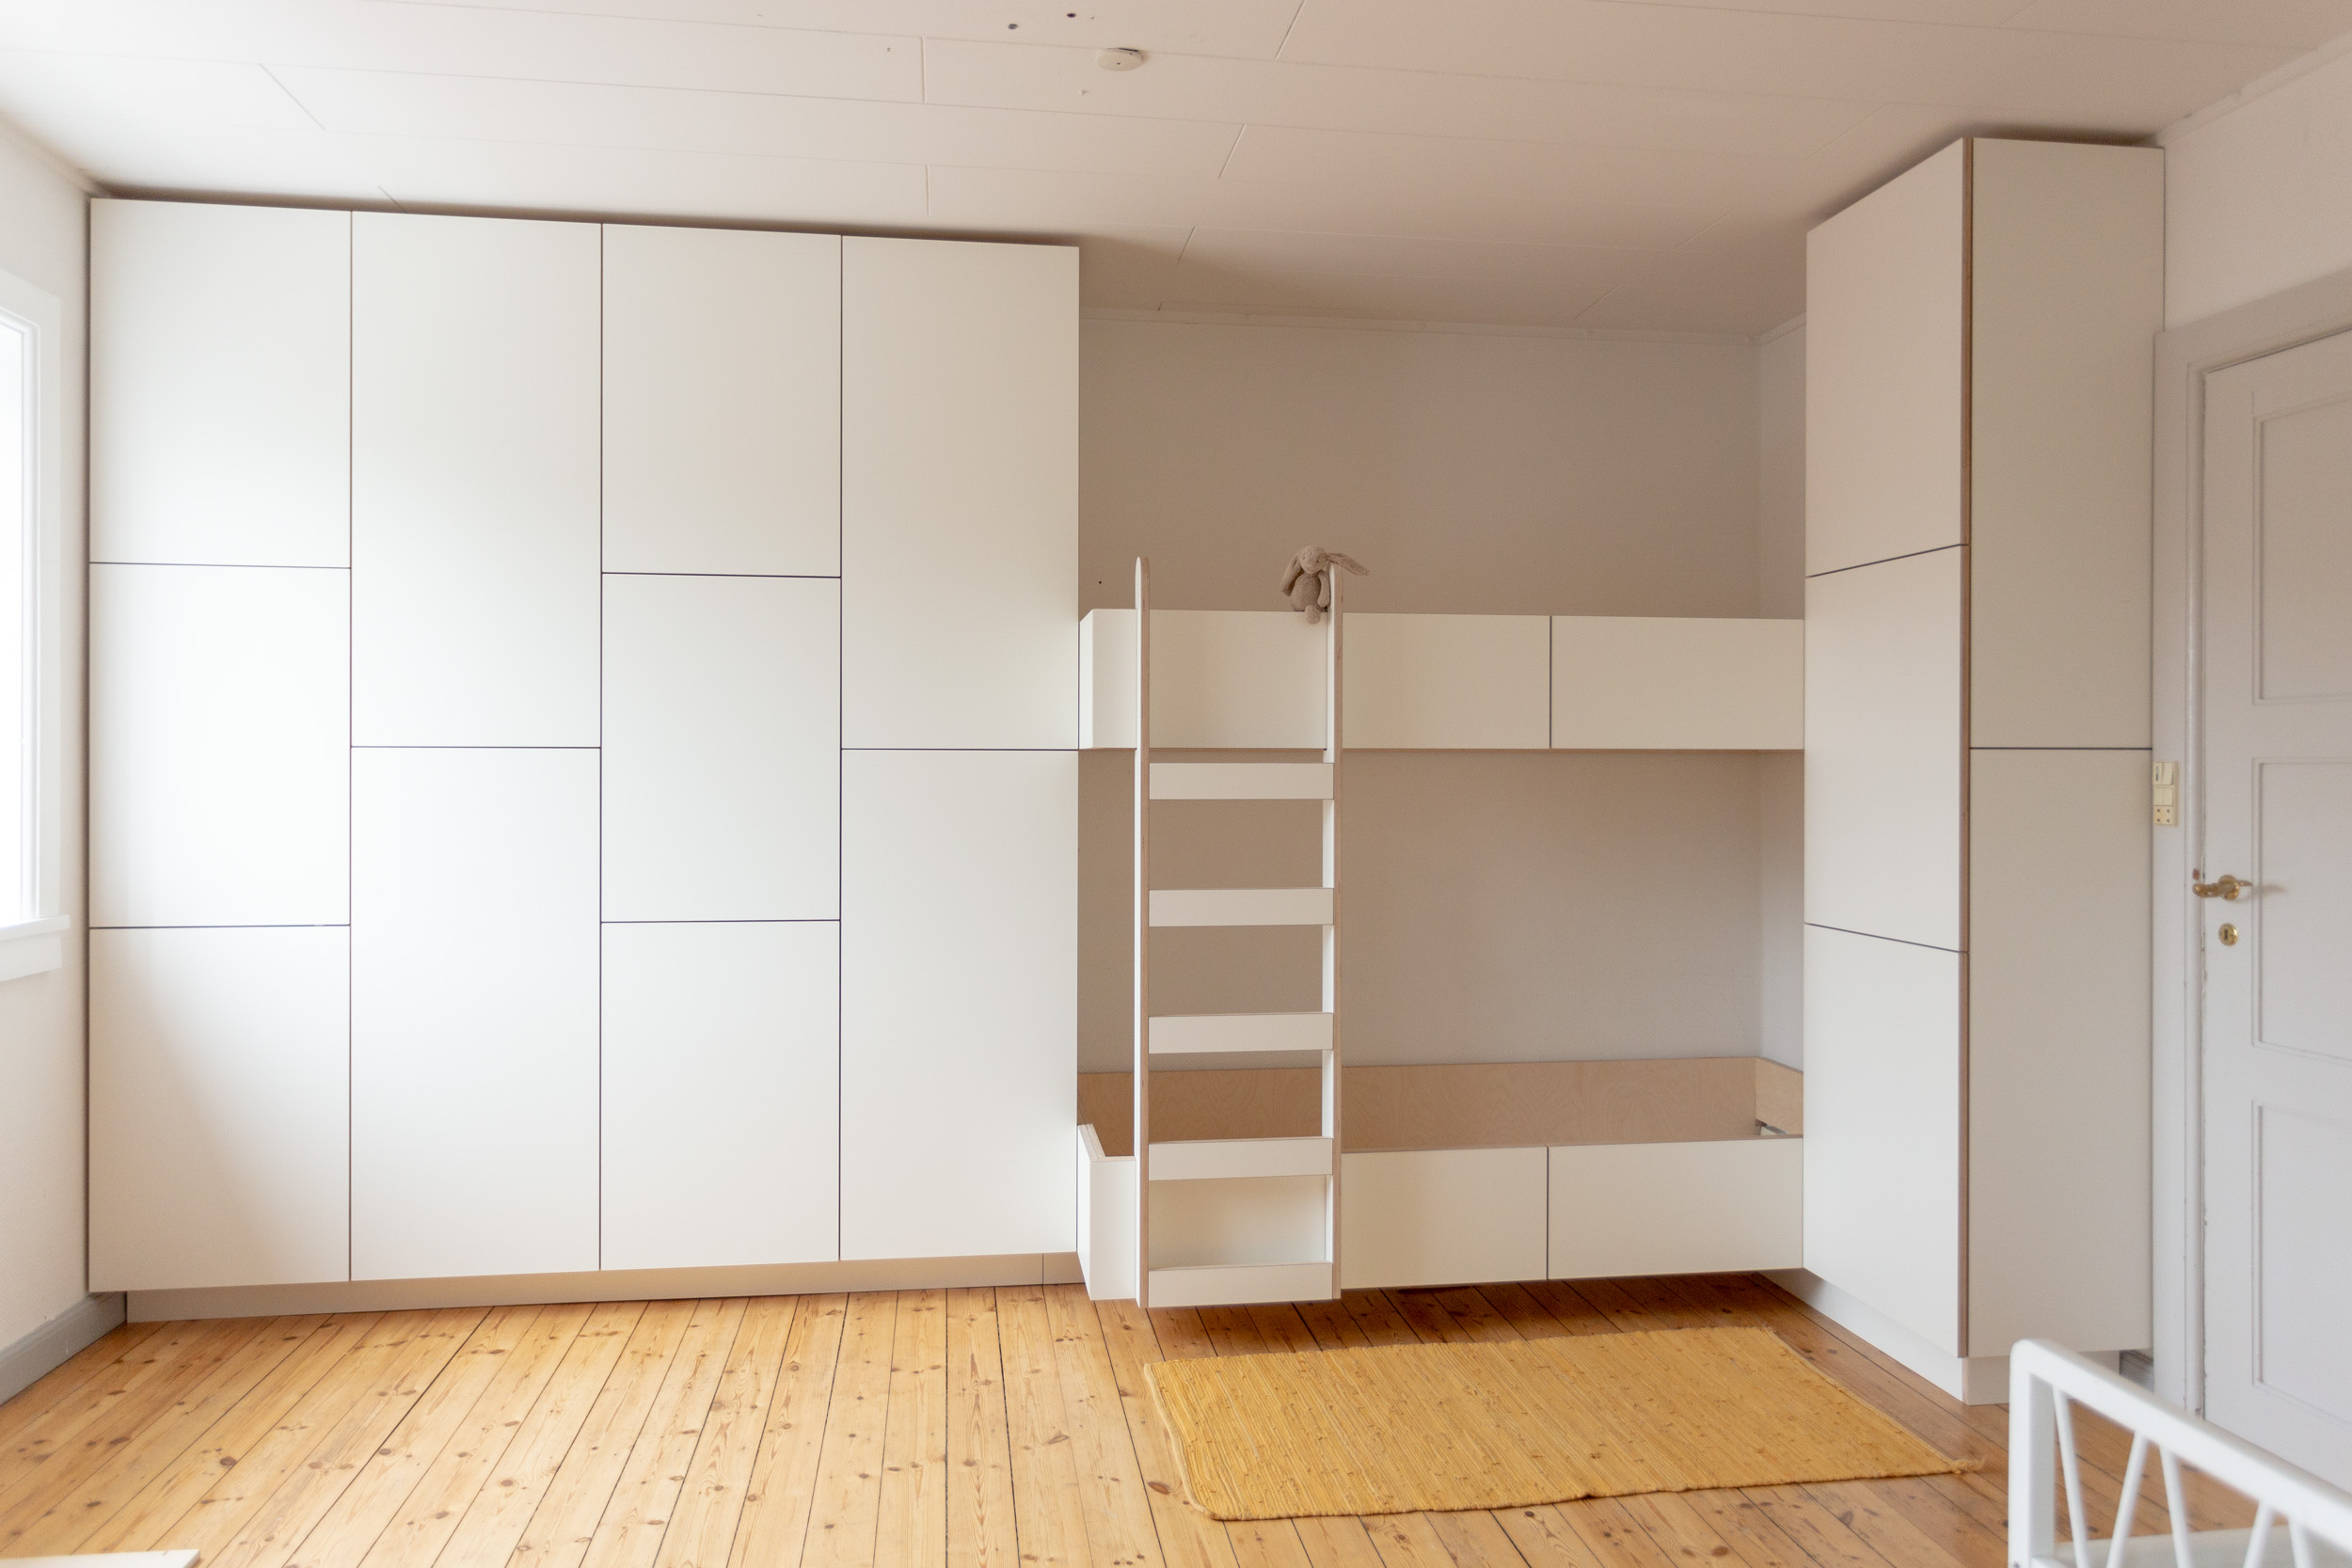 0831-m1h1-kids-room-bunk-bed-hidden-family-storage-minimal-stay-project-2500x.jpg